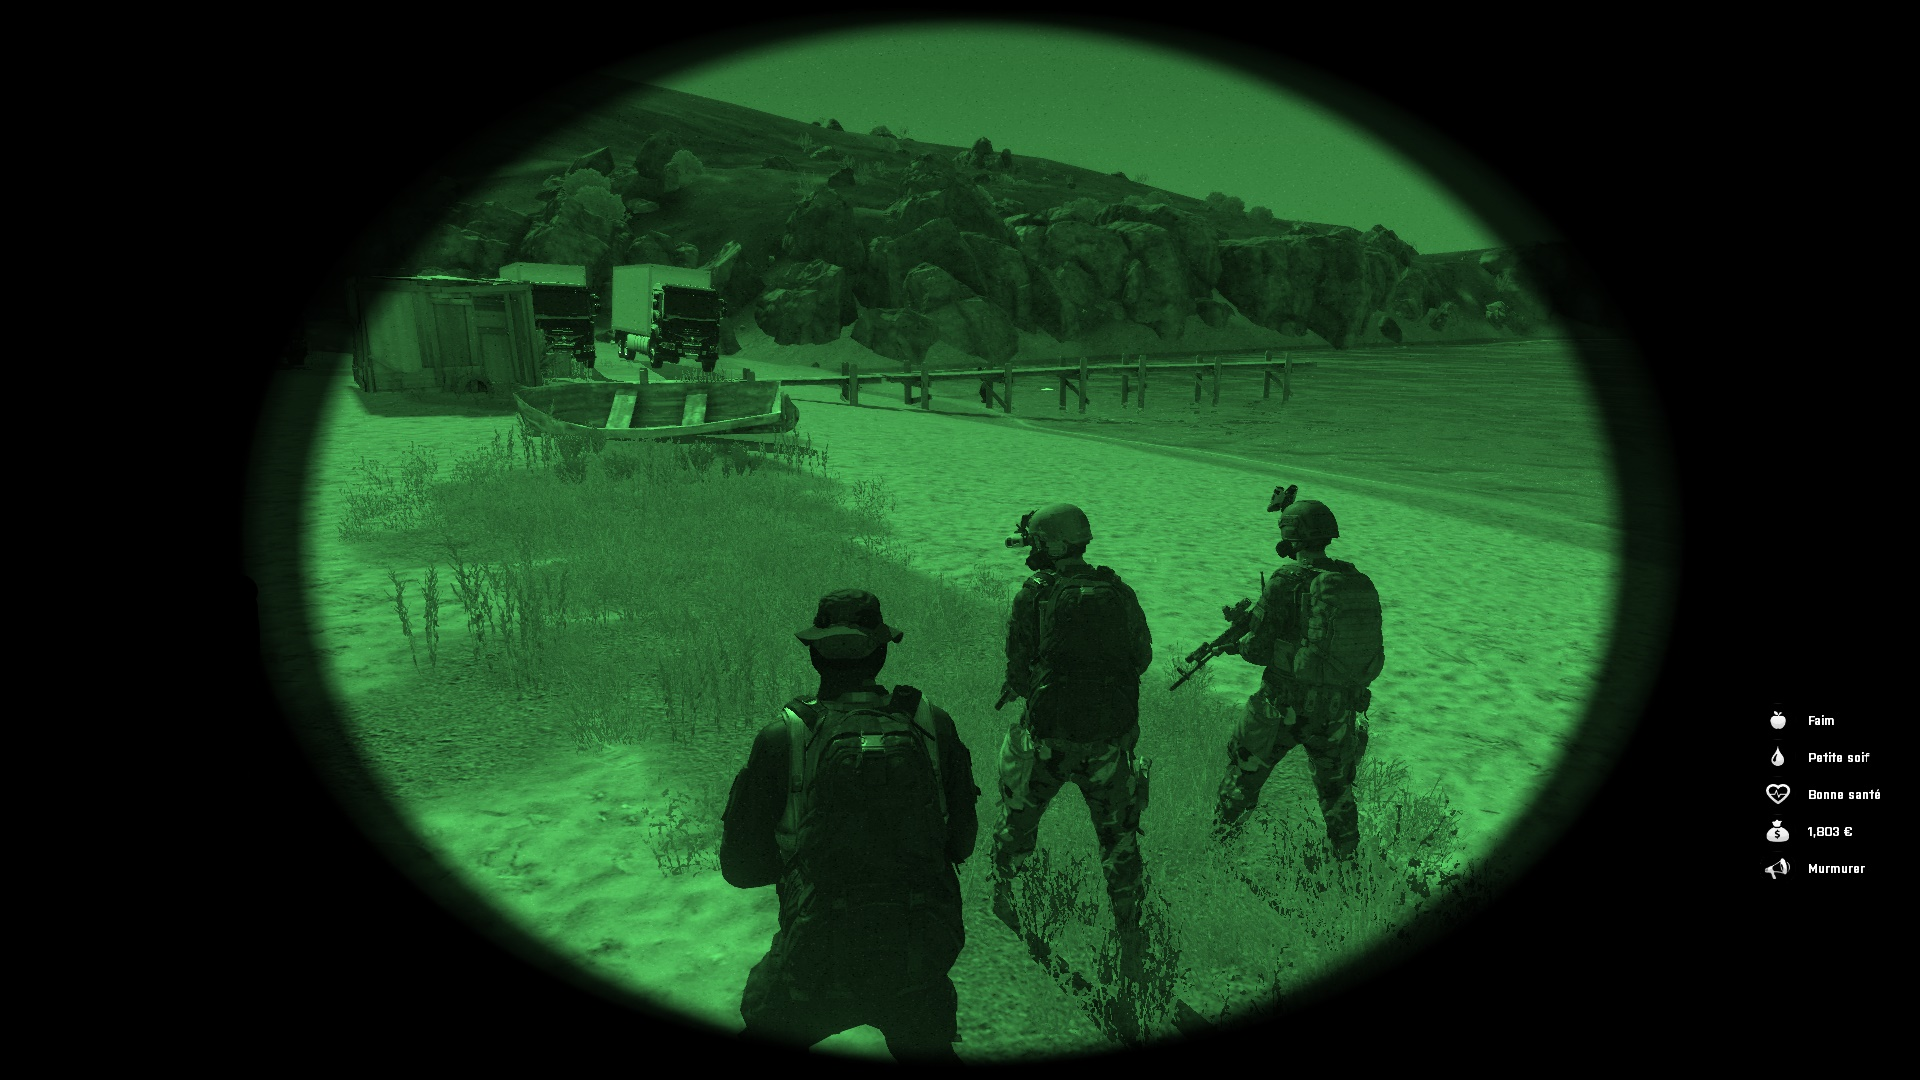 ArmA 3 Screenshot 2019.05.11 - 17.01.05.16_LI.jpg